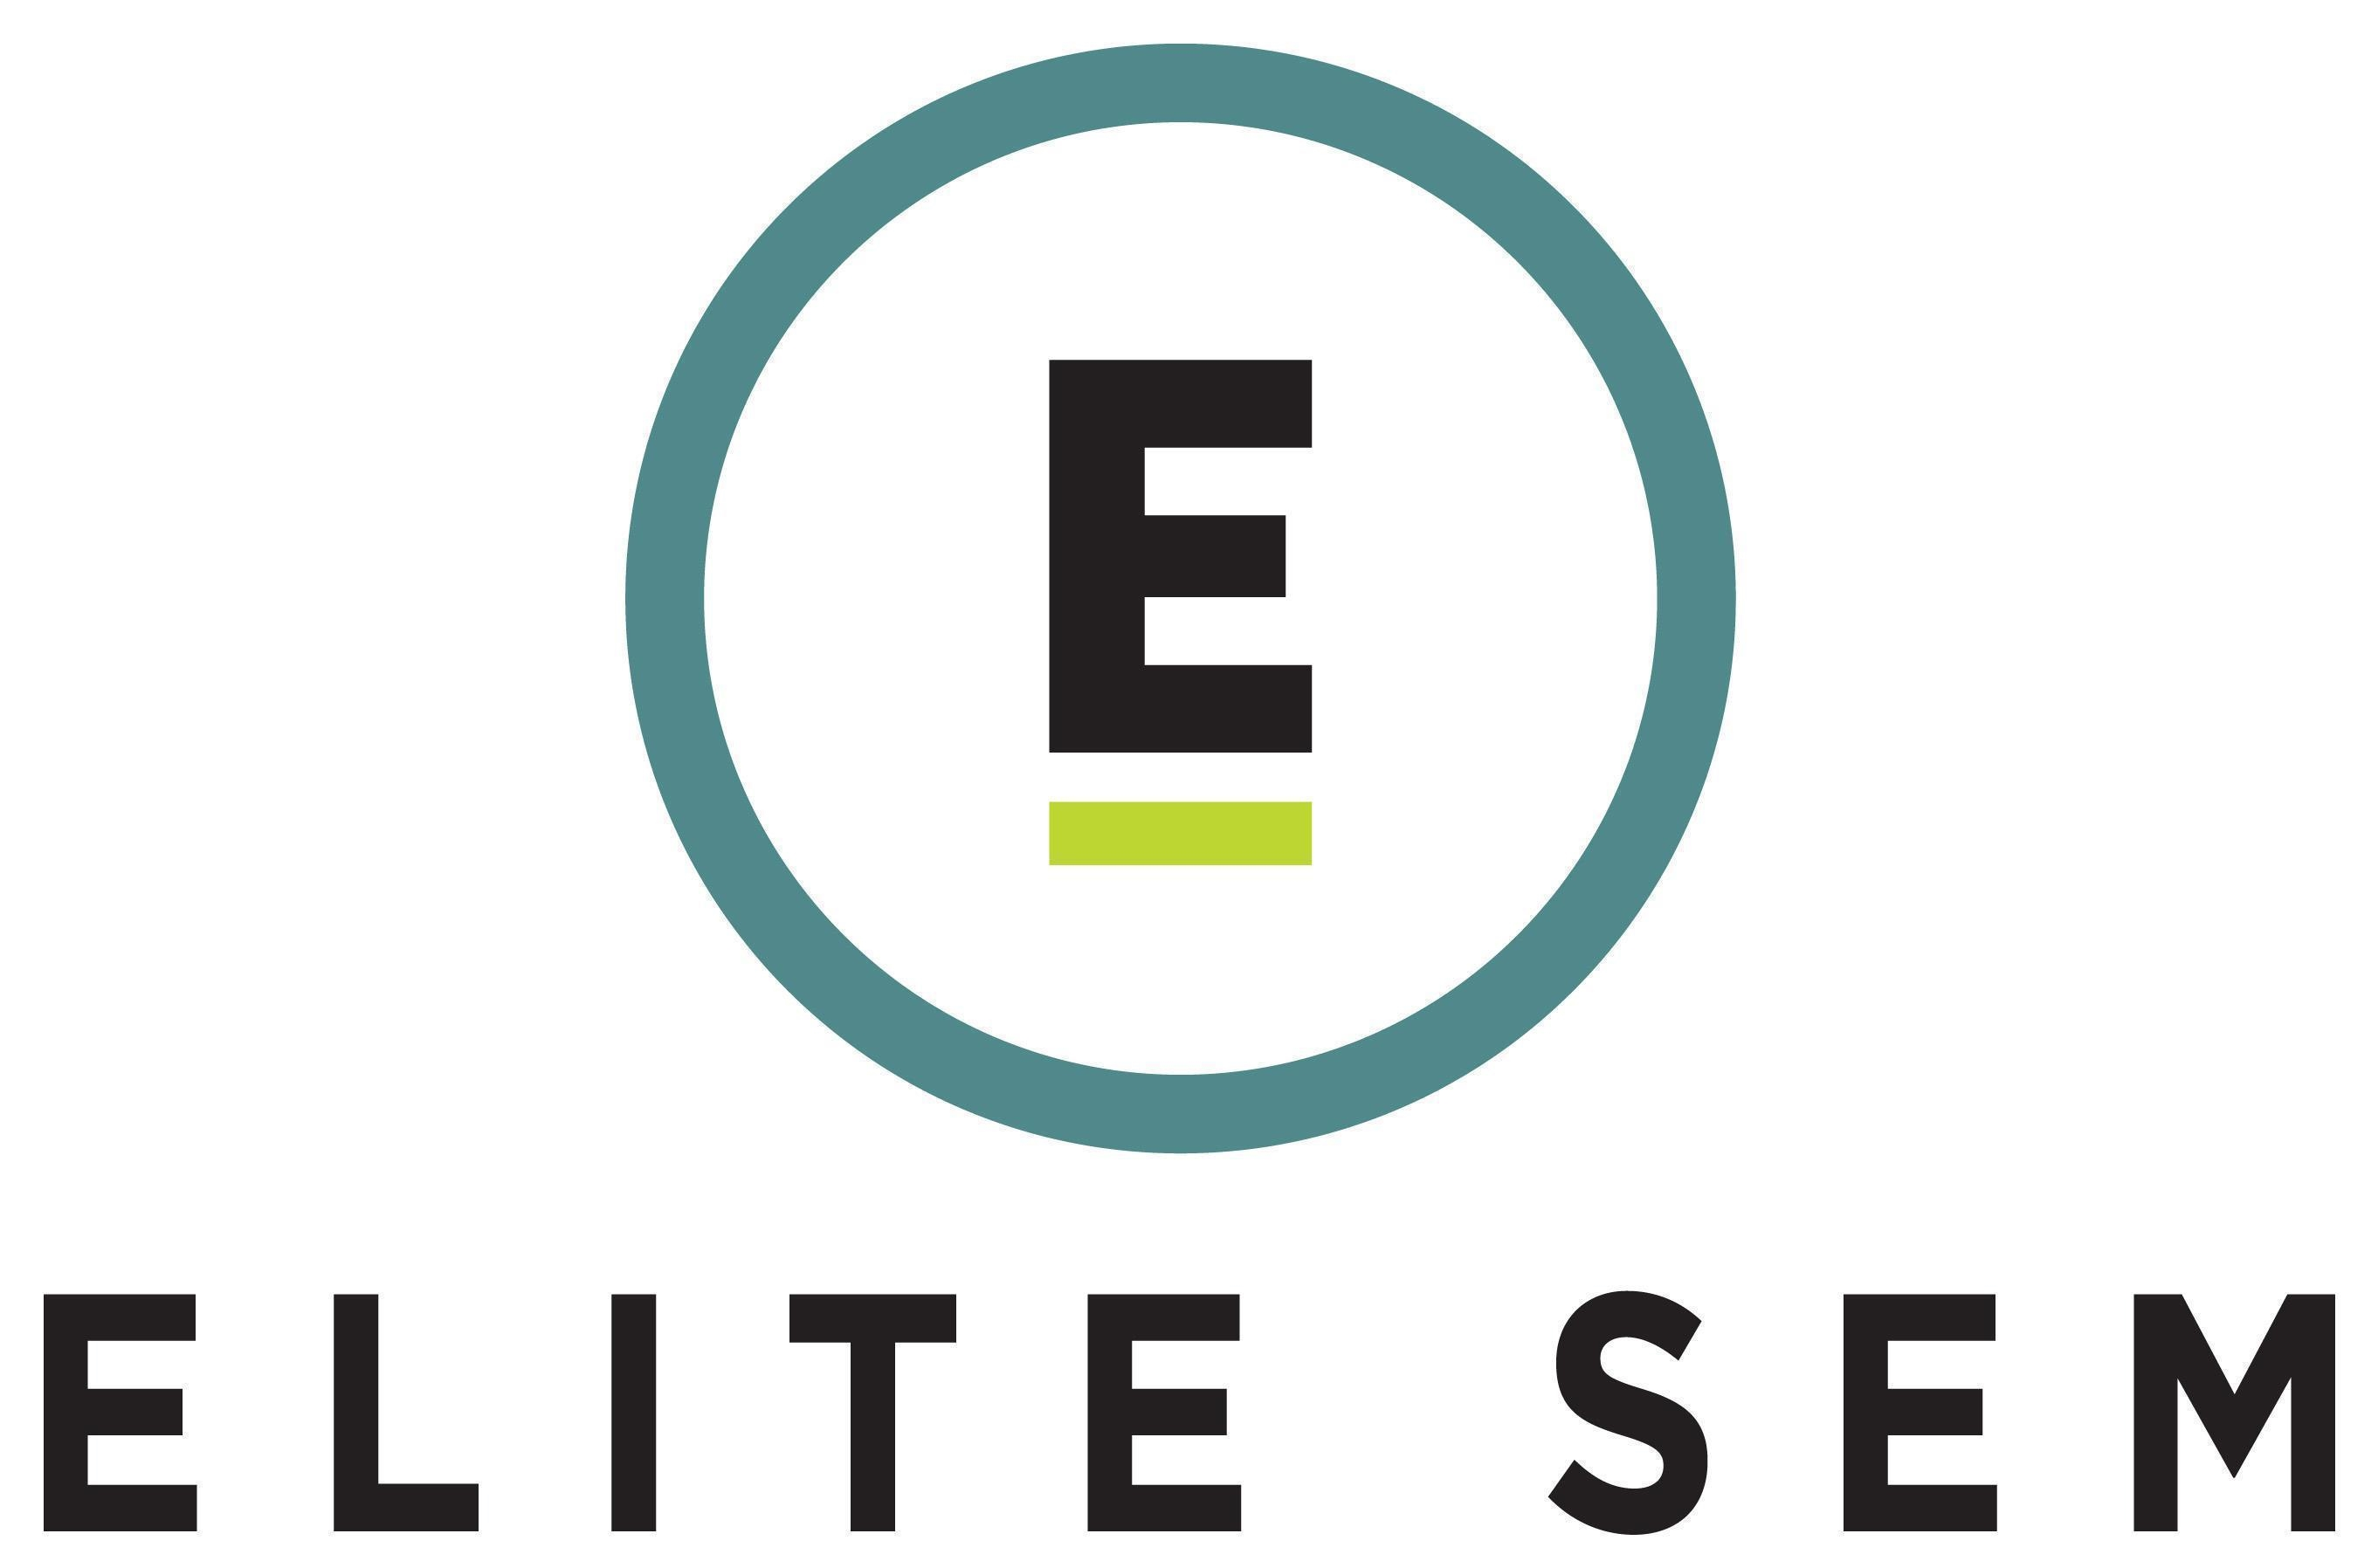 Elite SEM CEO Zach Morrison Readies Agency To Take Next Step | DeviceDaily.com